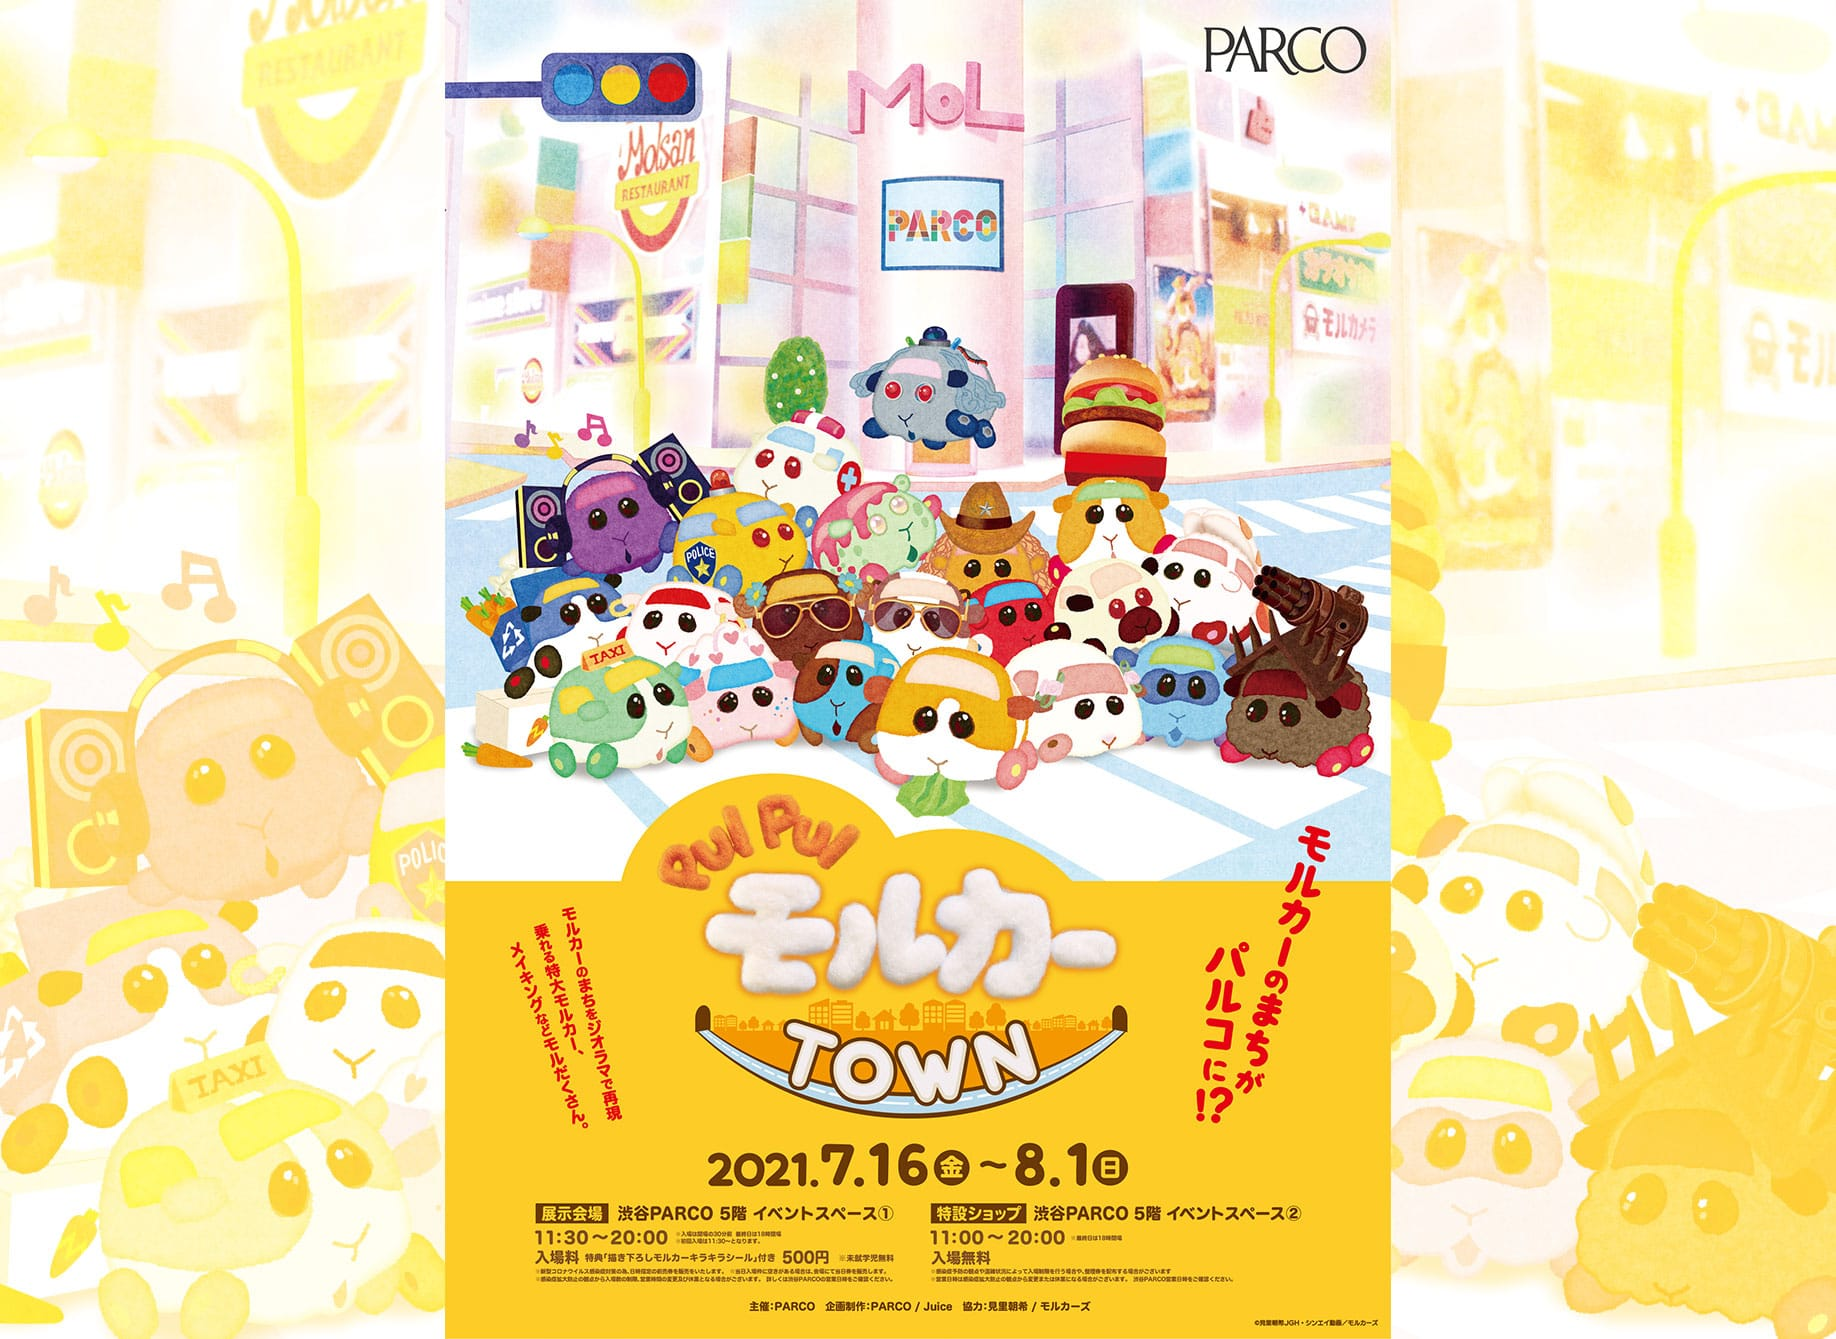 PUI PUI モルカー展 浦和・名古屋・福岡・広島にて巡回開催が決定!